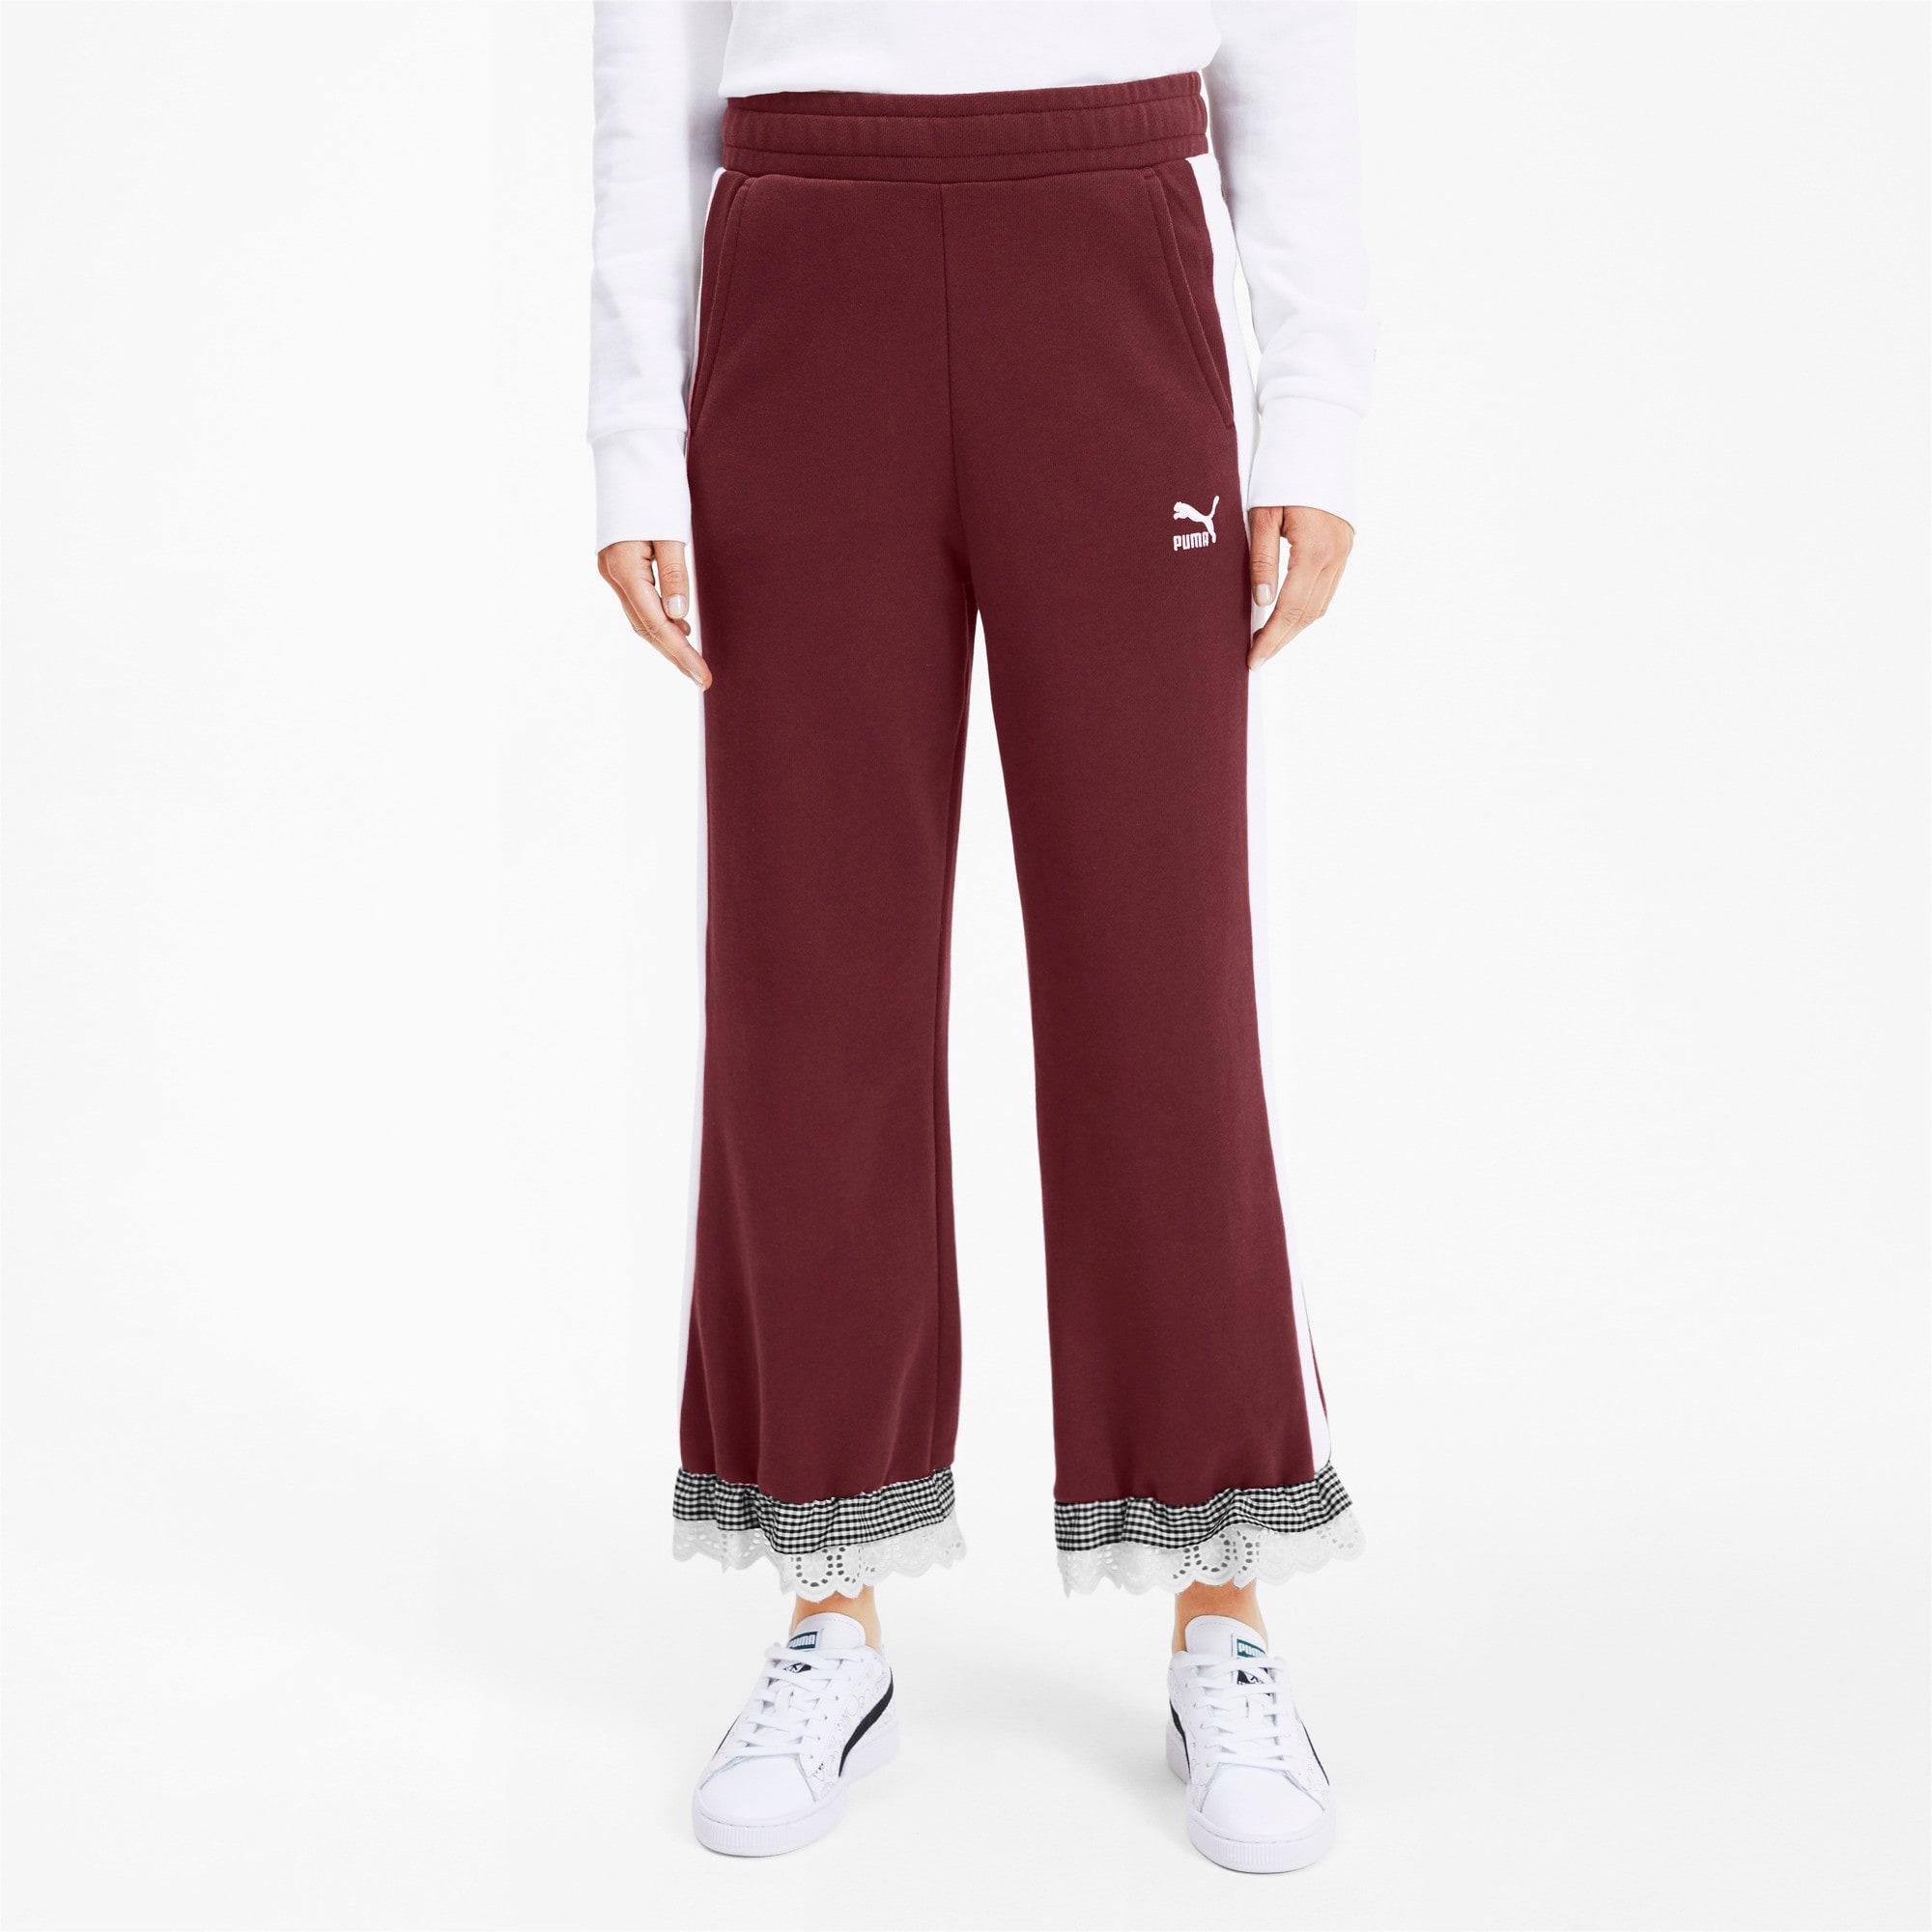 Thumbnail 2 of PUMA x TYAKASHA Knitted Women's Culottes, Vineyard Wine, medium